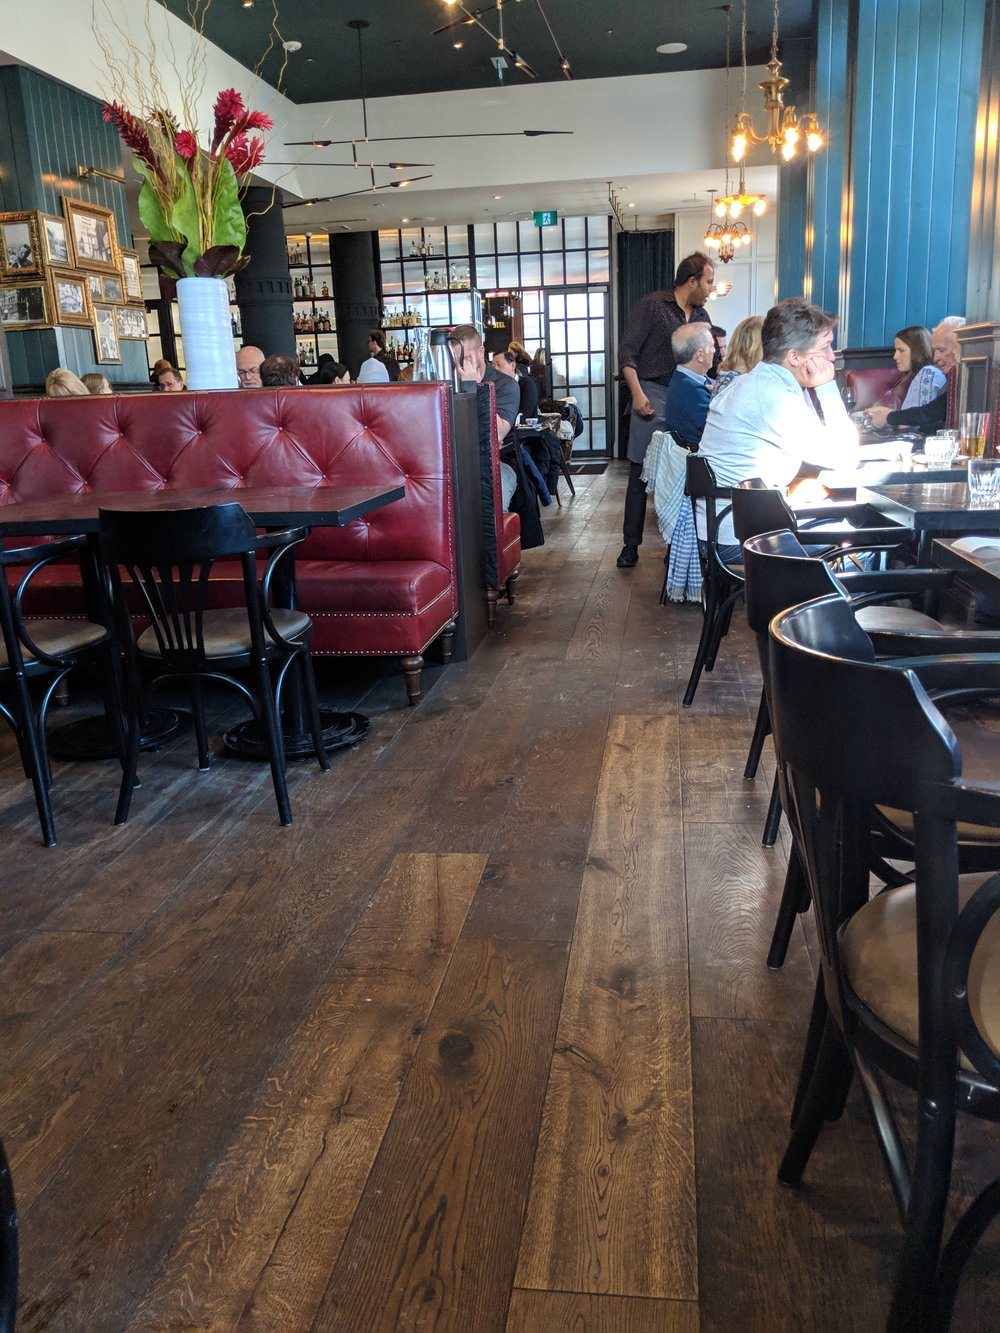 Picture of wide pathways in the Civic Restaurant